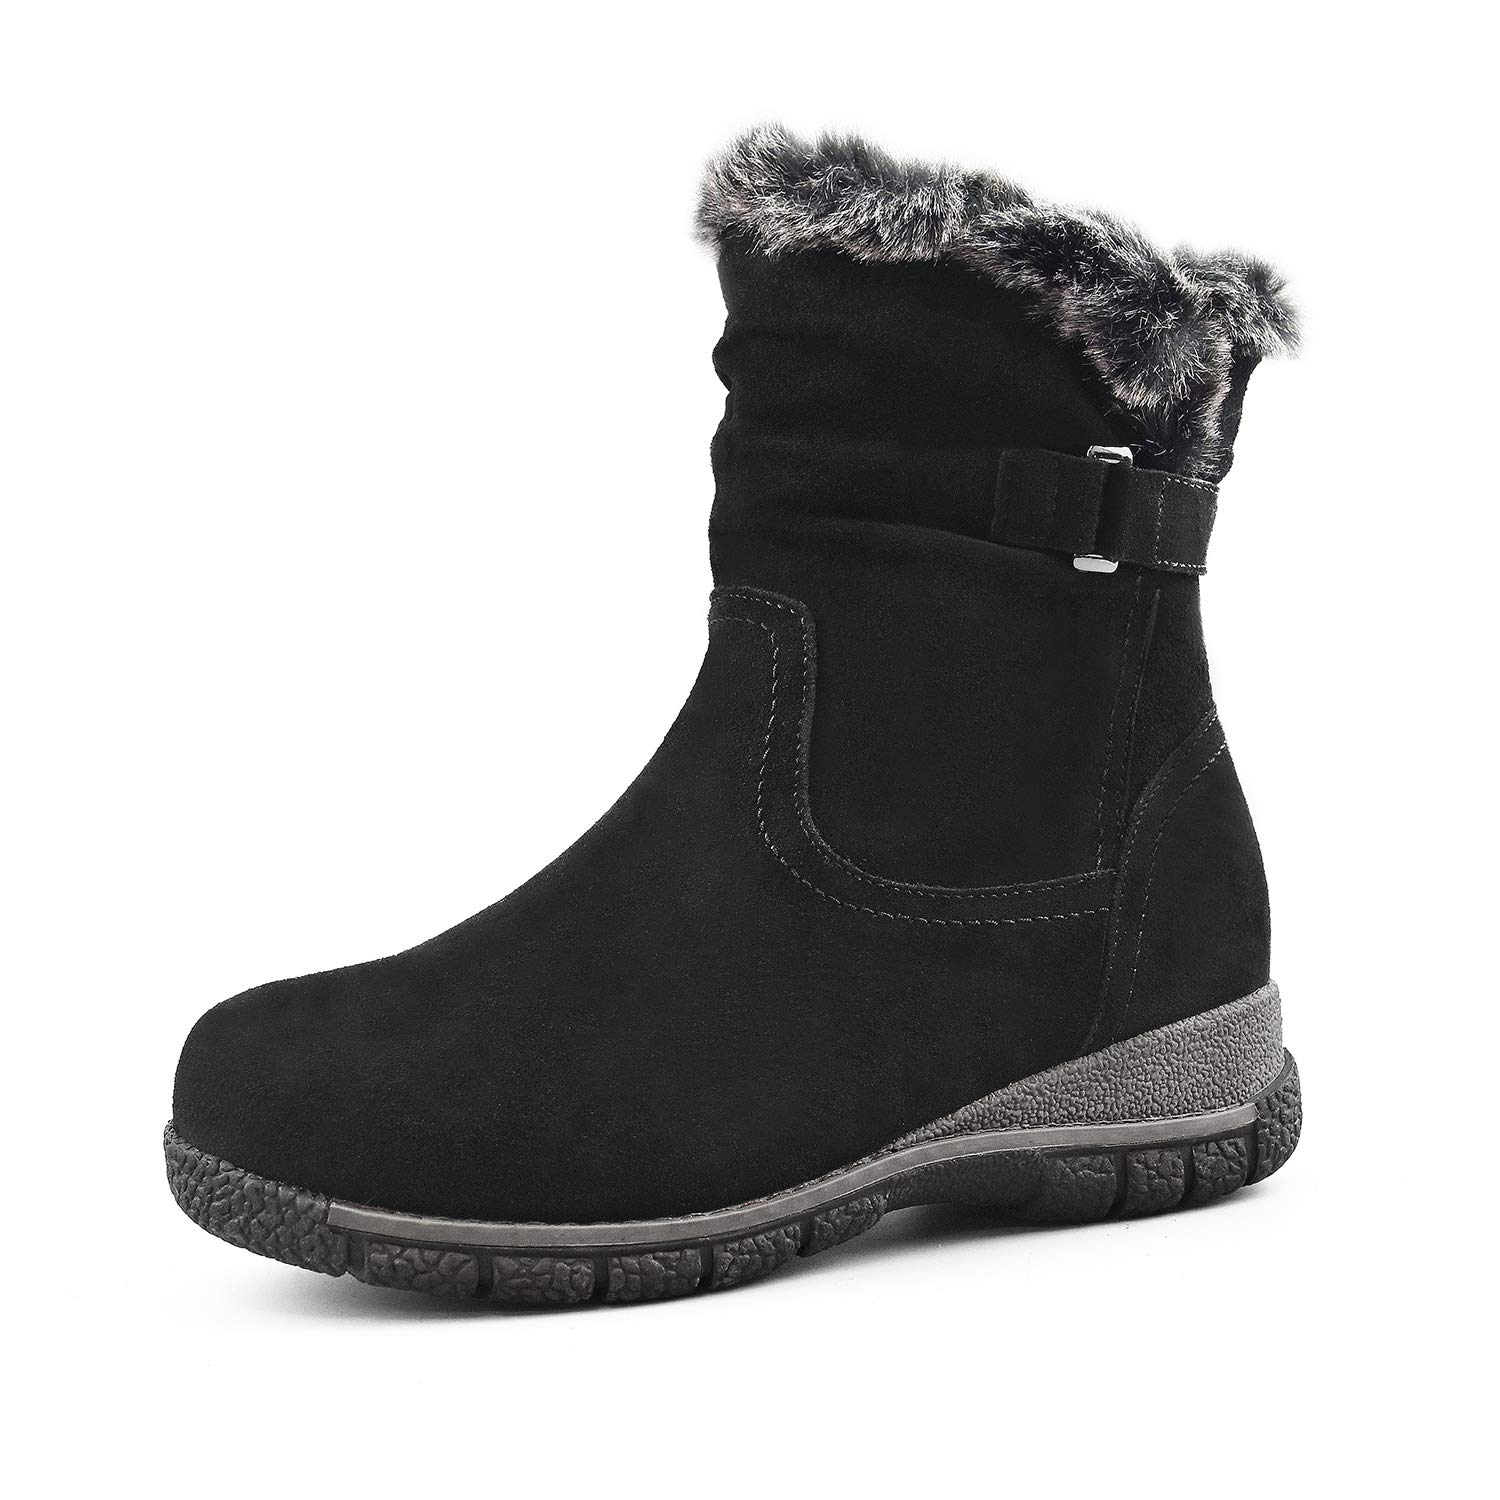 Comfy Moda Women's Wool-Lined Cold Weather Boots Berlin